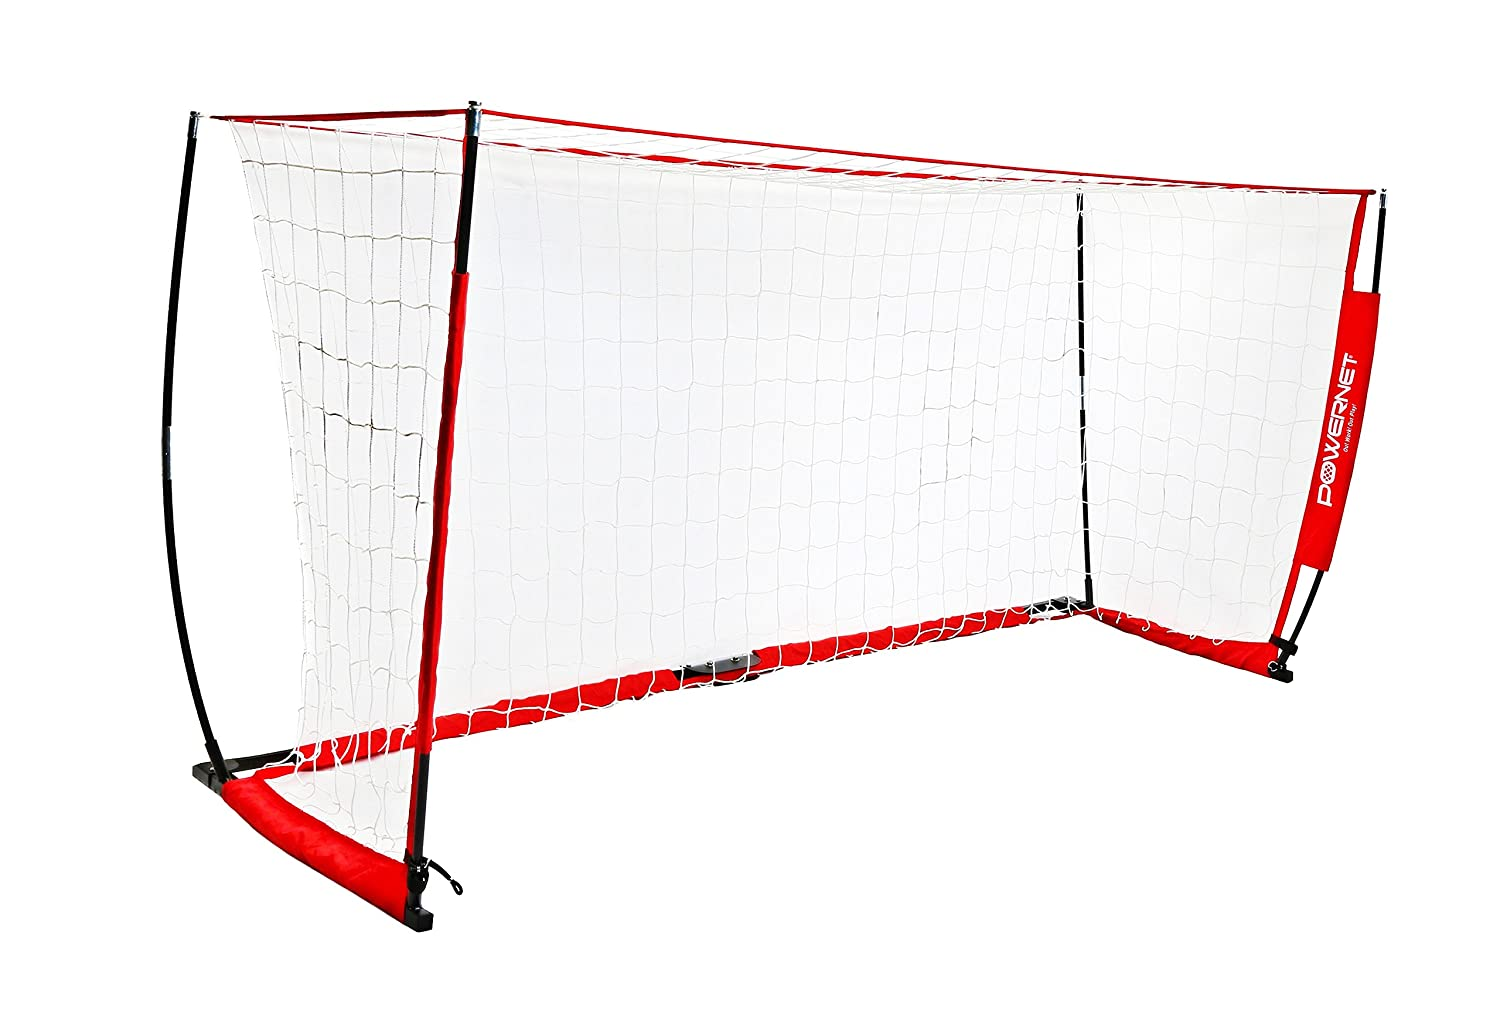 Portable Bow Net Soccer Goal